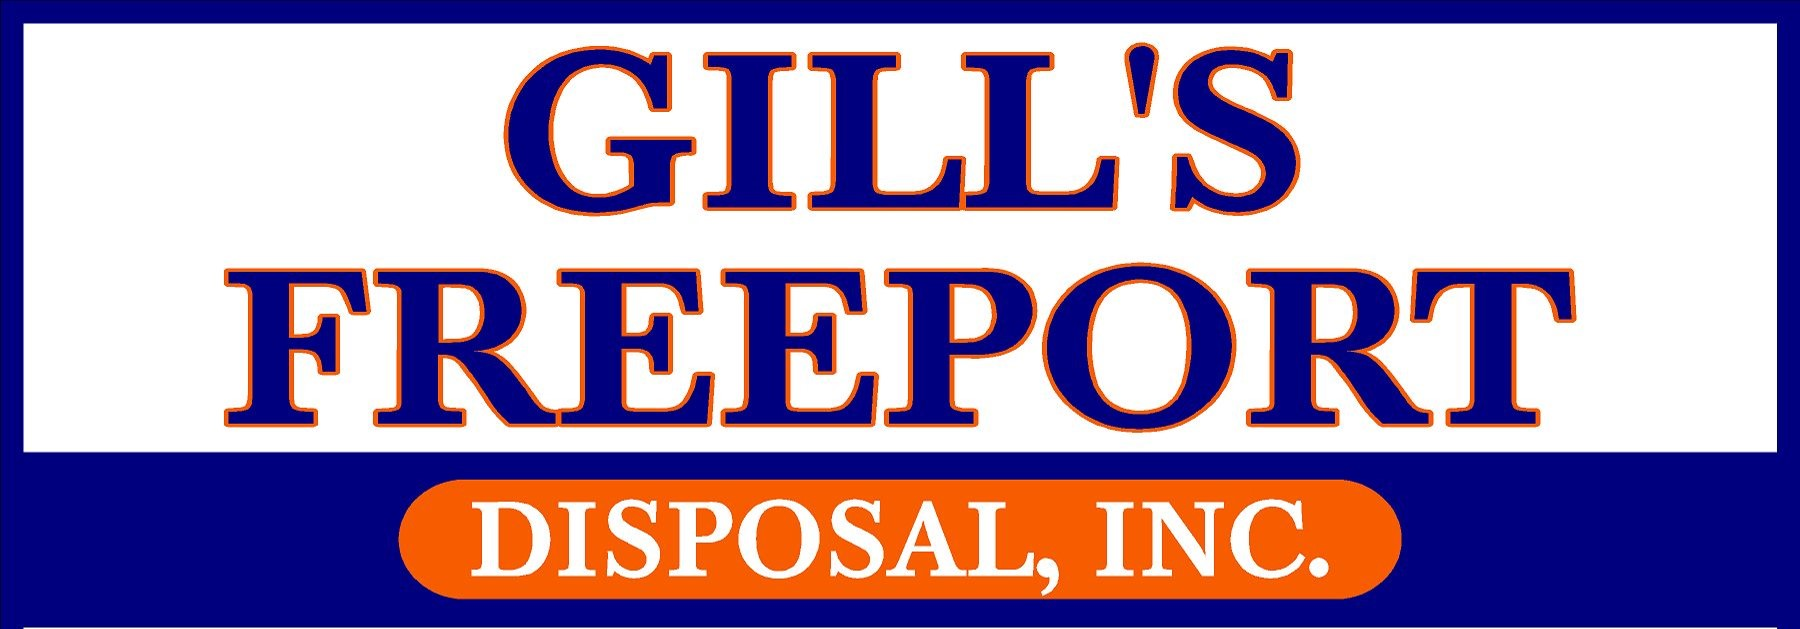 Gills Freeport Disposal